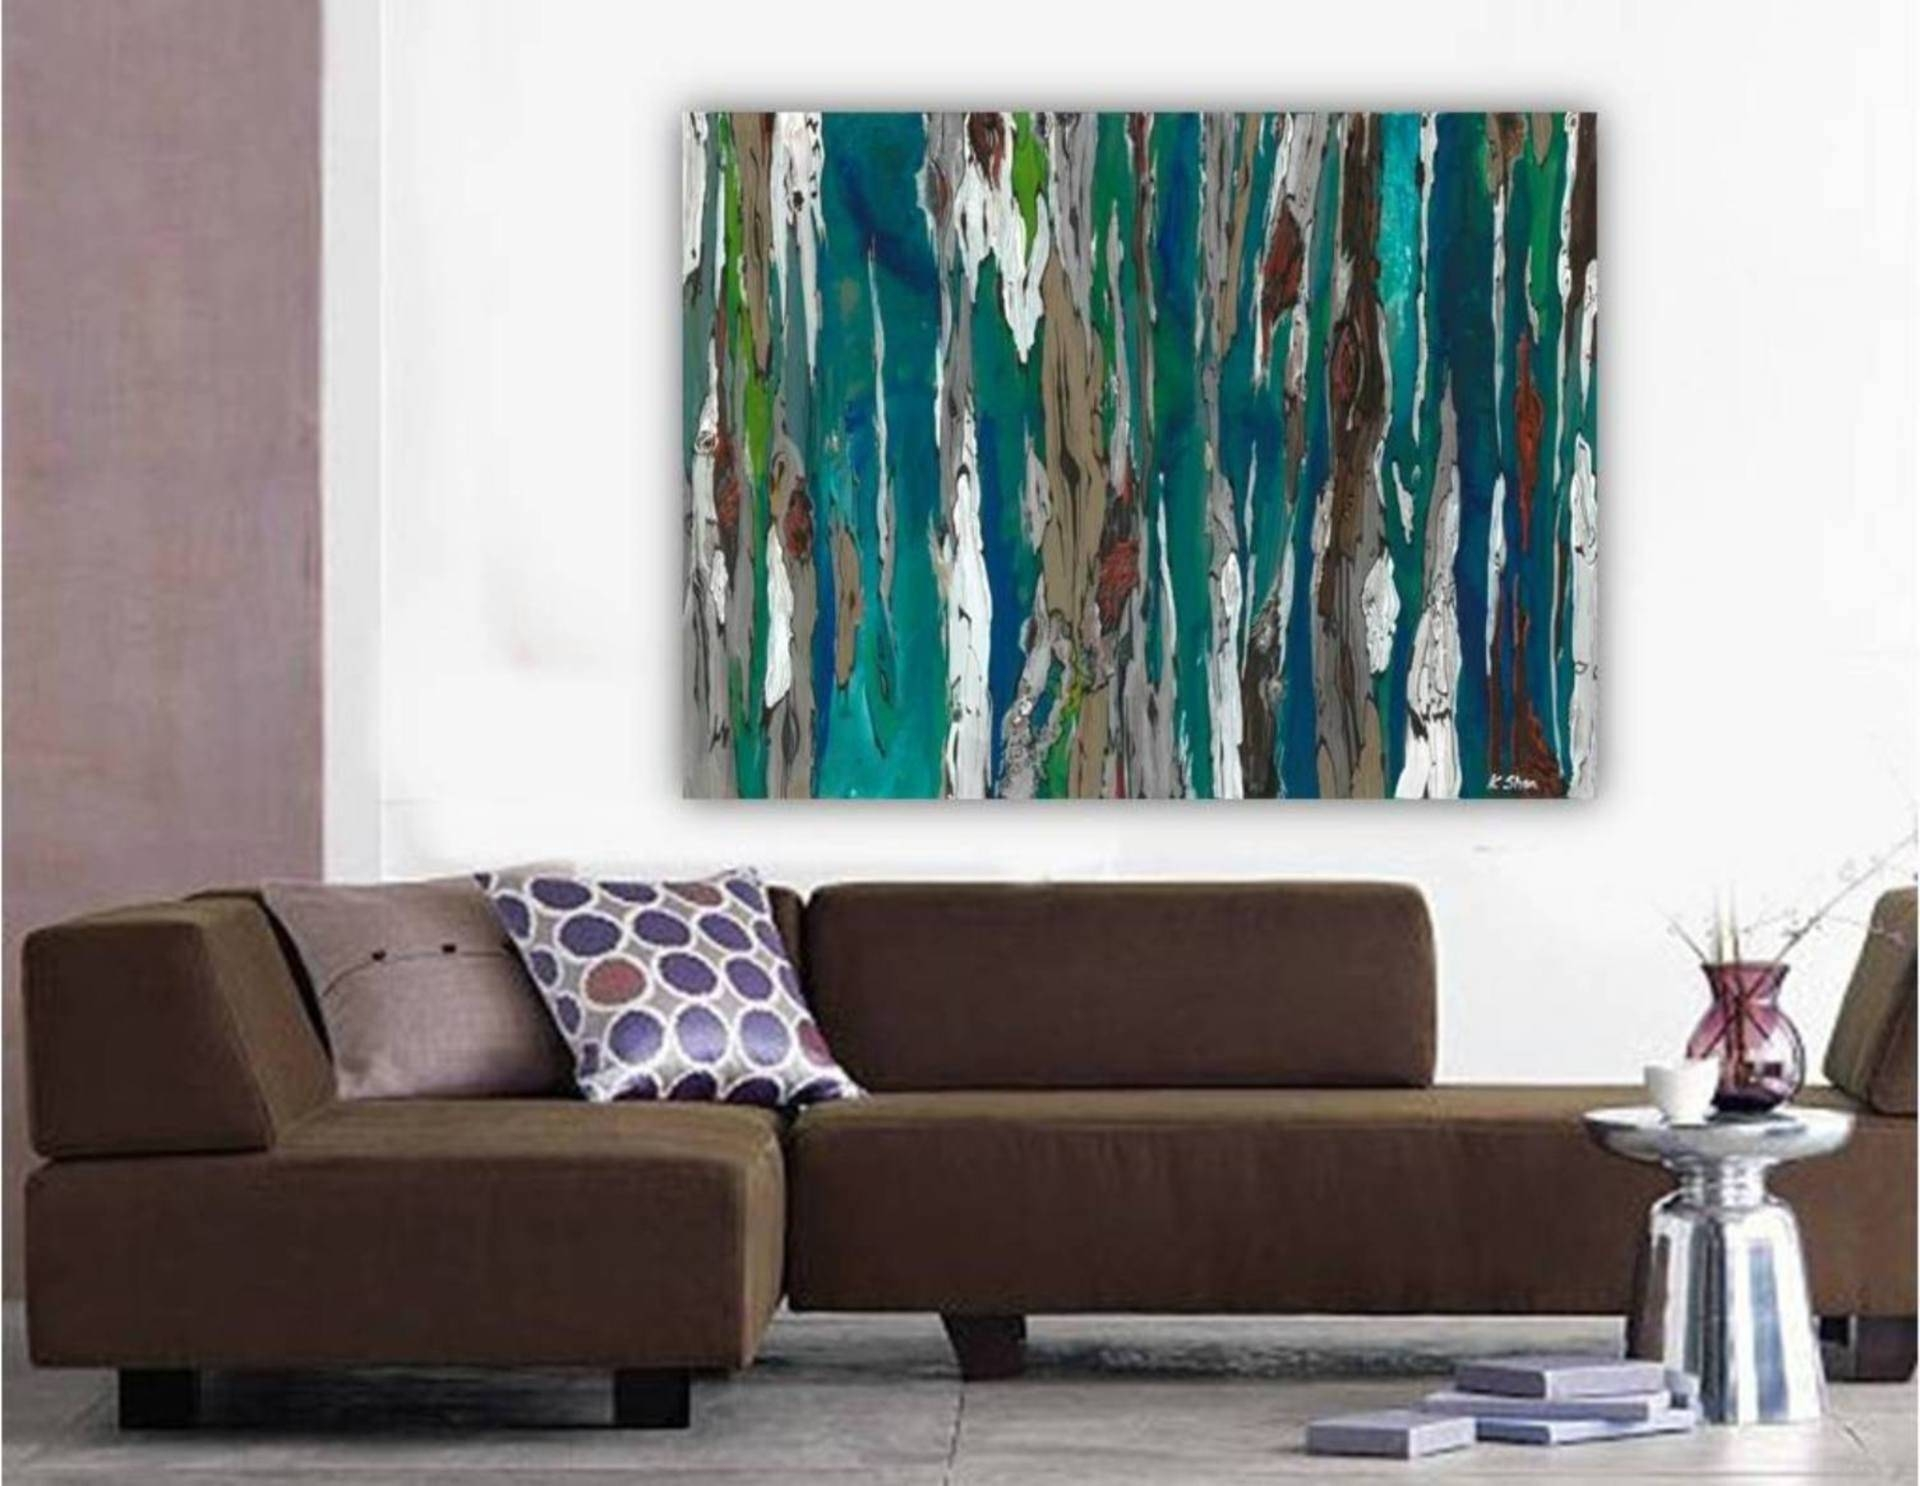 Saatchi Art: Large Contemporary Original Abstract Tree Landscape Throughout Current Turquoise And Brown Wall Art (View 17 of 25)